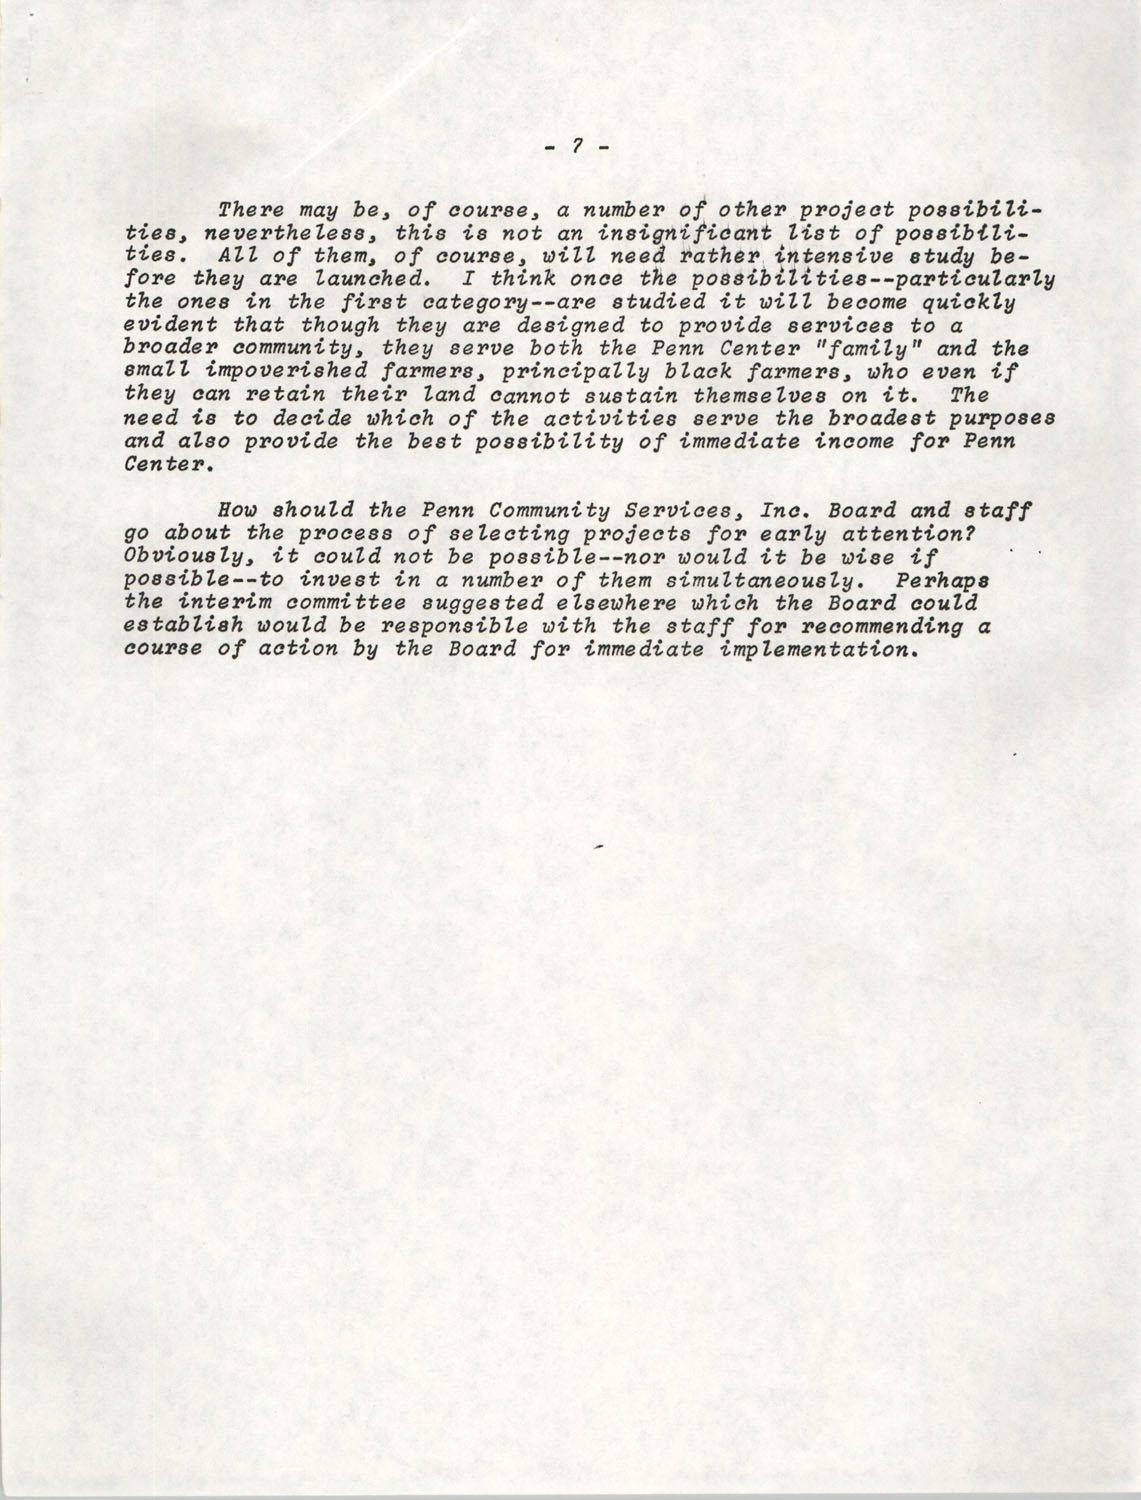 Planning and Management Assistance Project Report, Penn Community Services, April 1978, Page 7